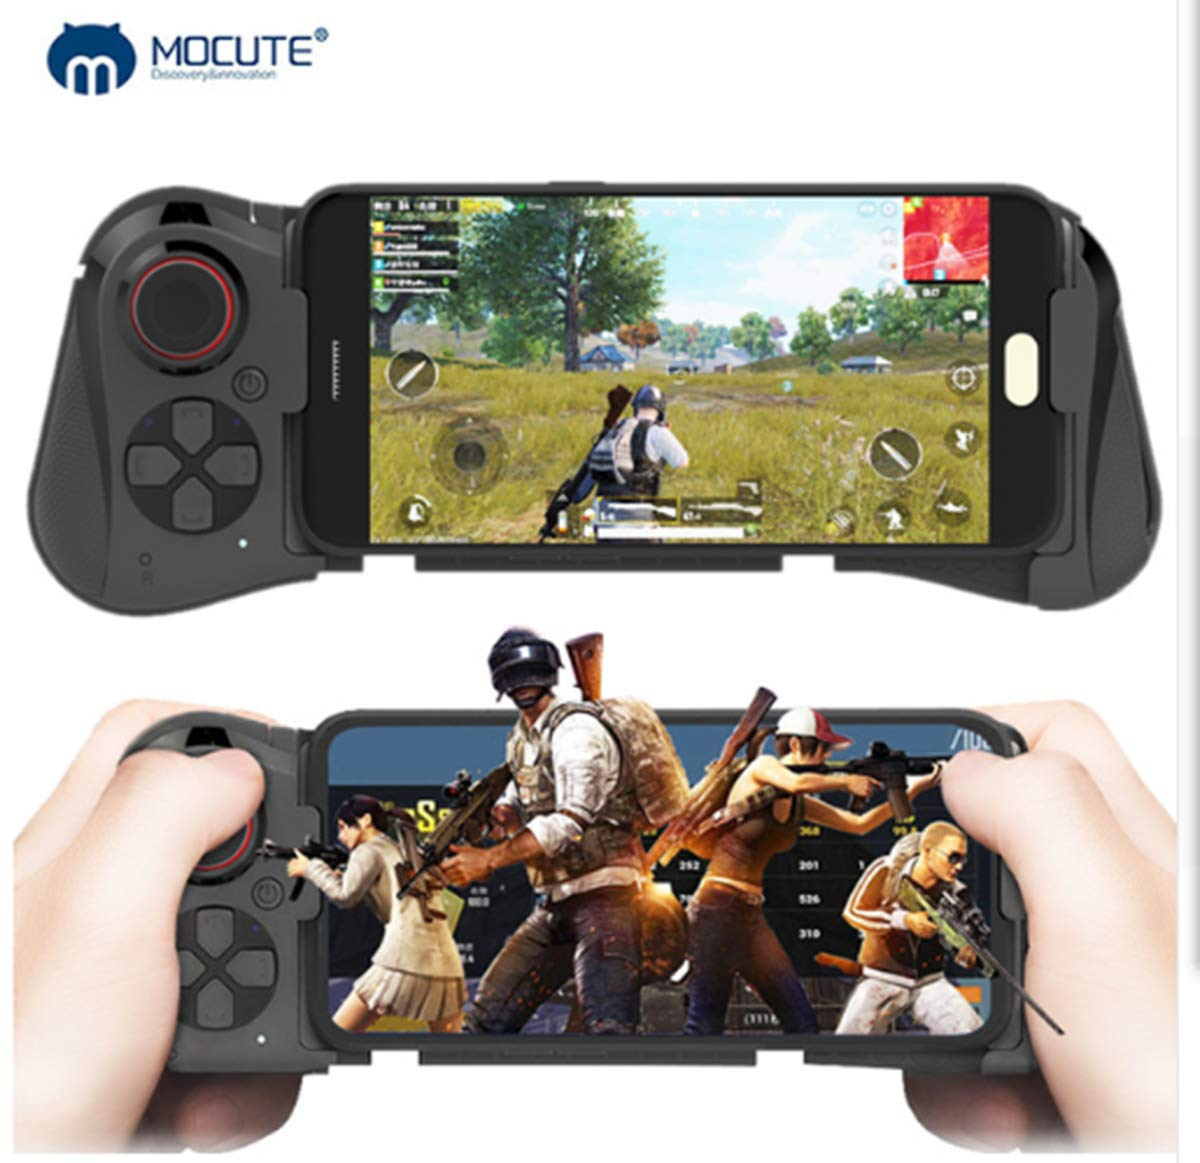 Mocute 058 Wireless BT Gamepad Smart Game Controller for Android Smartphone  Samsung S8, S9 Note 8 Huawei vivo x21 Oppo Android Tablet PC